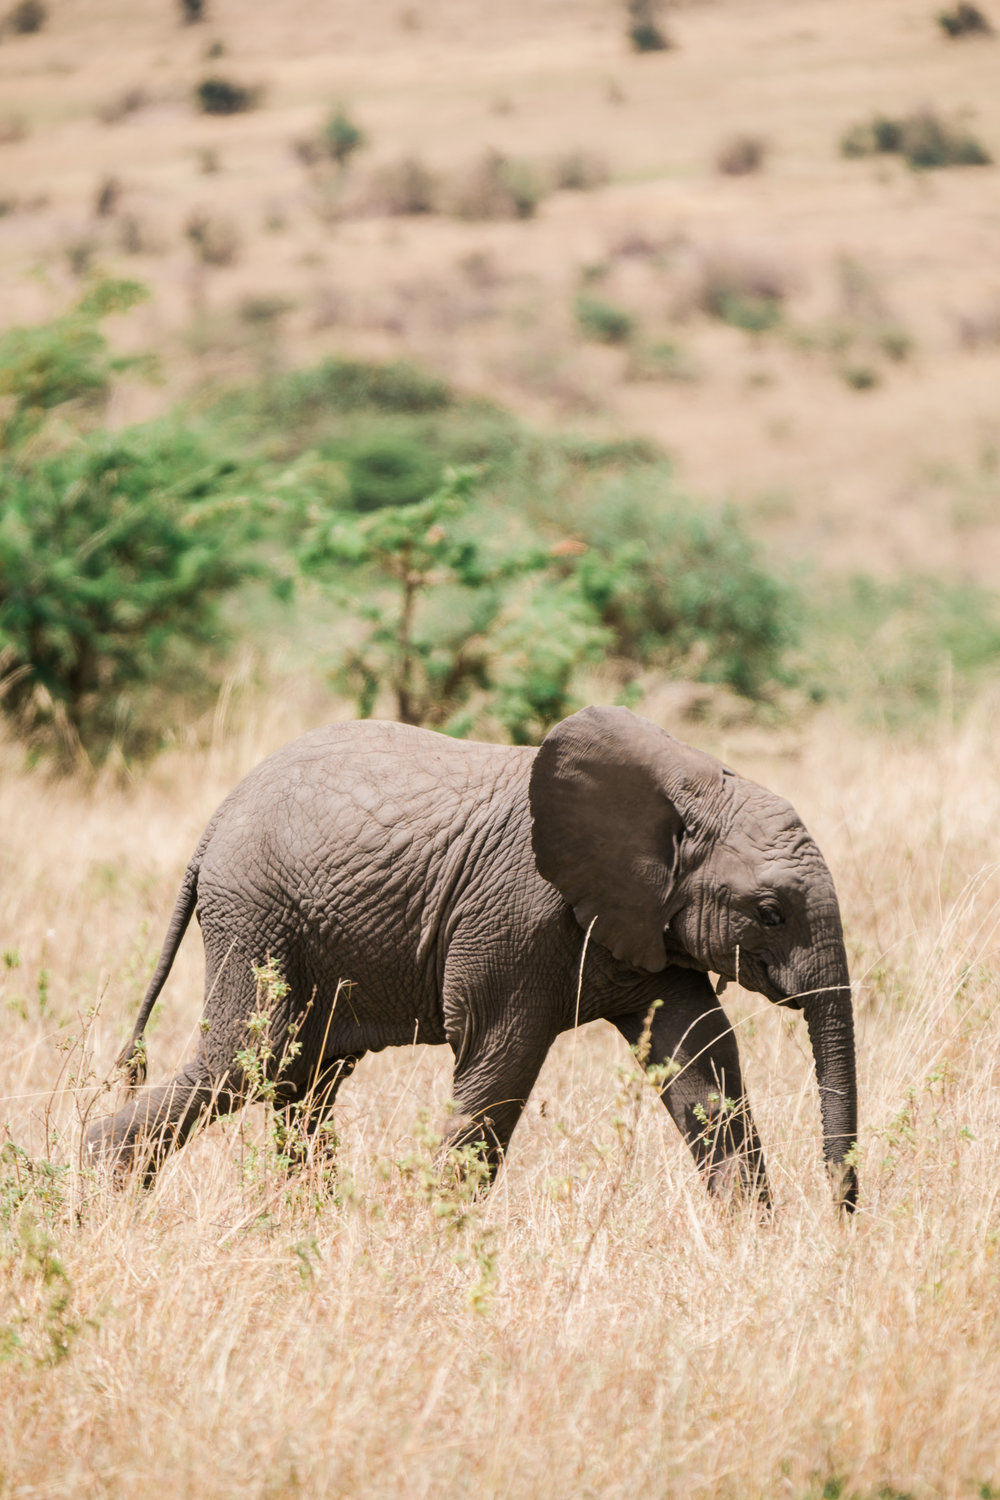 Baby Elephant - Kenya Safari Ph. Valorie Darling